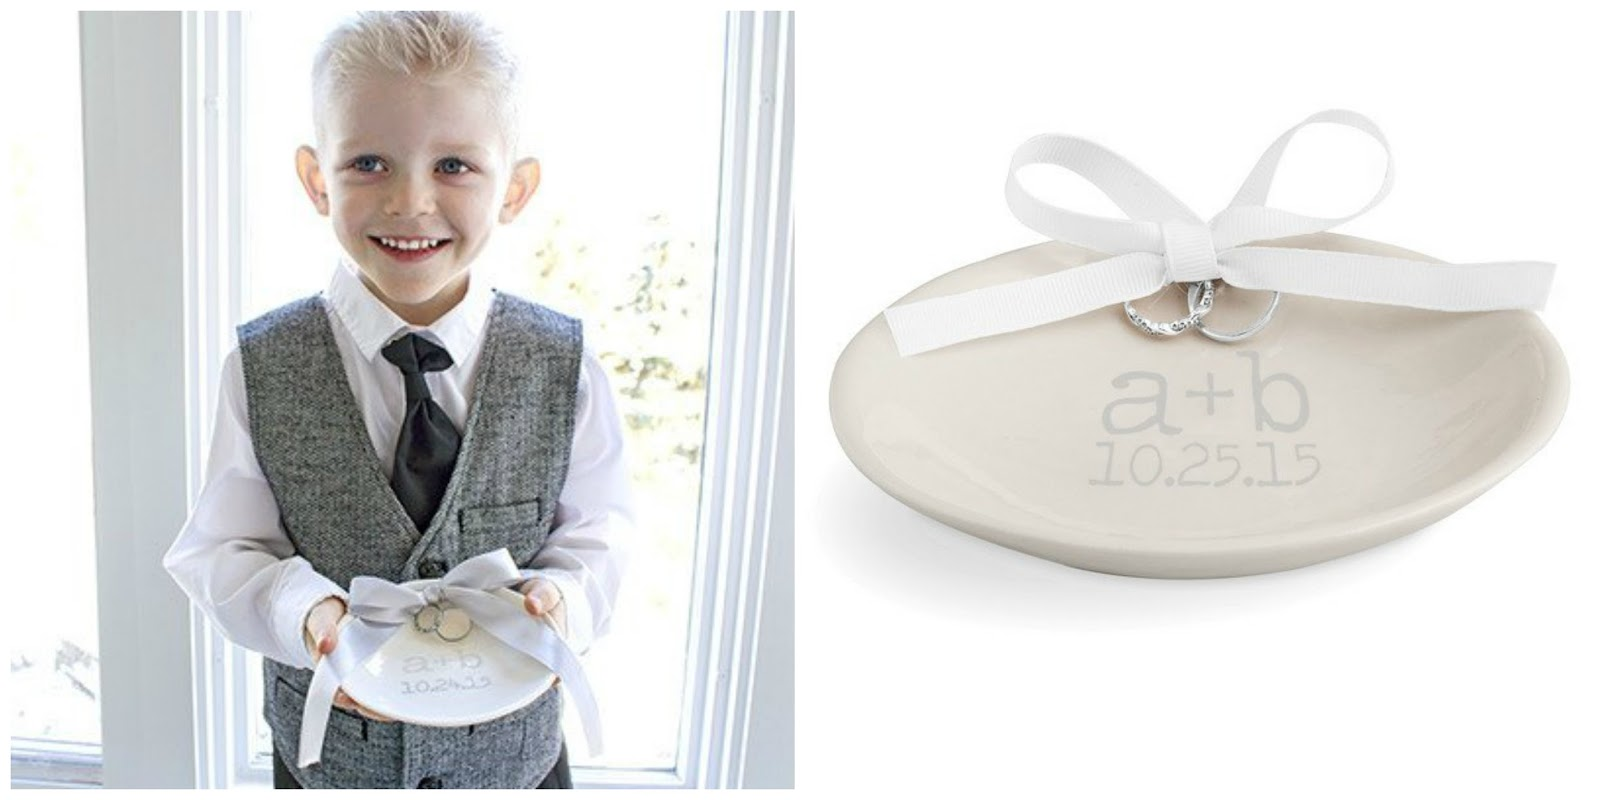 a197eaef25e ... specially made for your wedding day for the ring bearer to carry